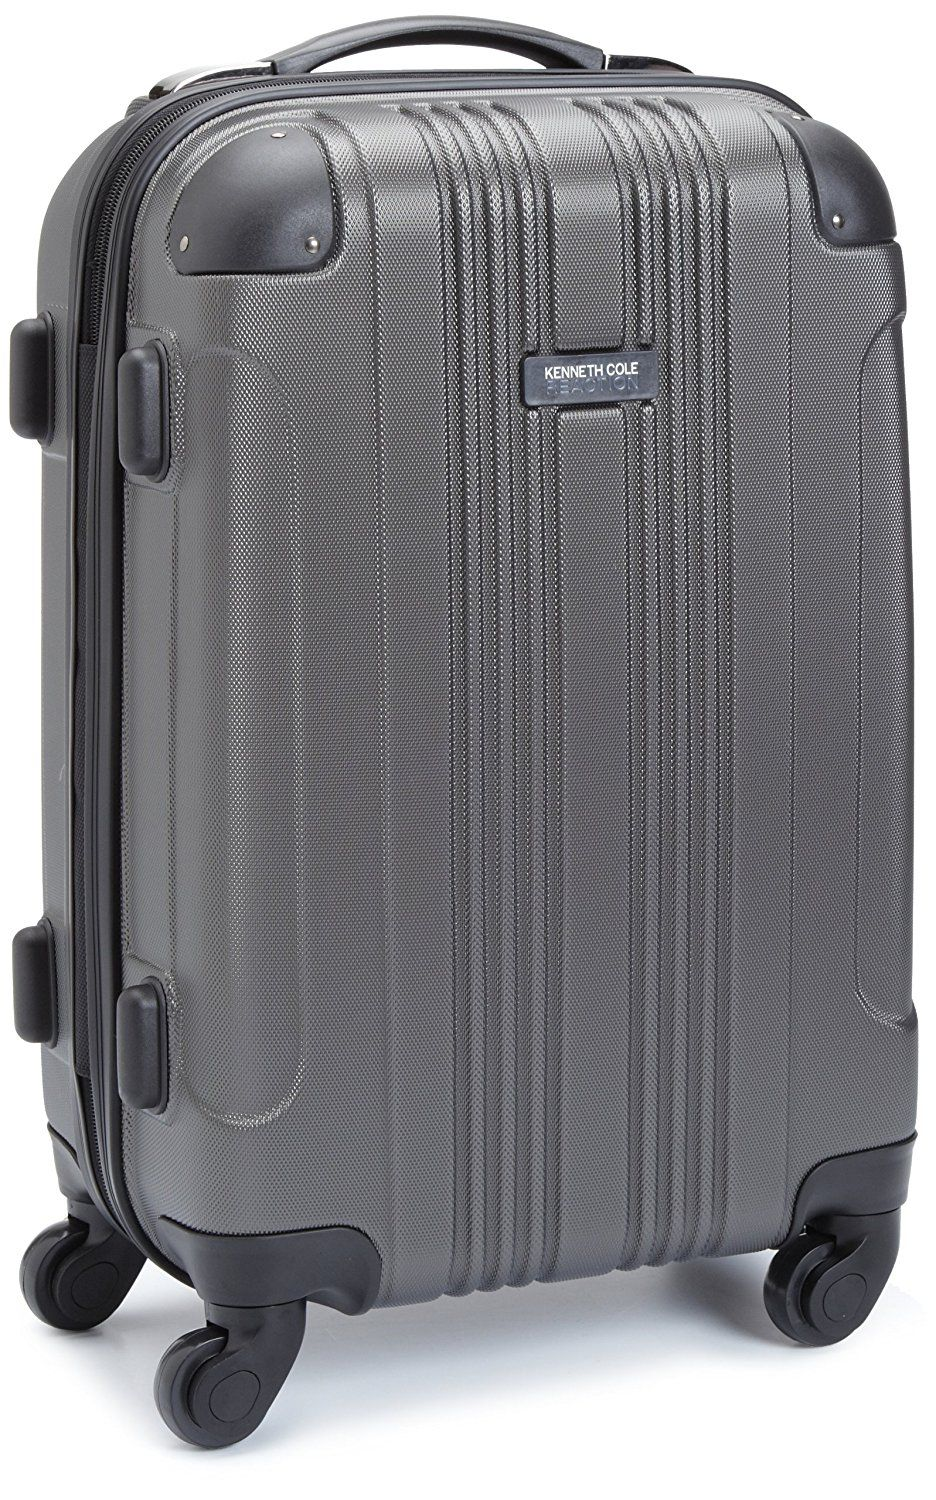 8 Kenneth Cole Reaction Luggage Items to Buy in 2018